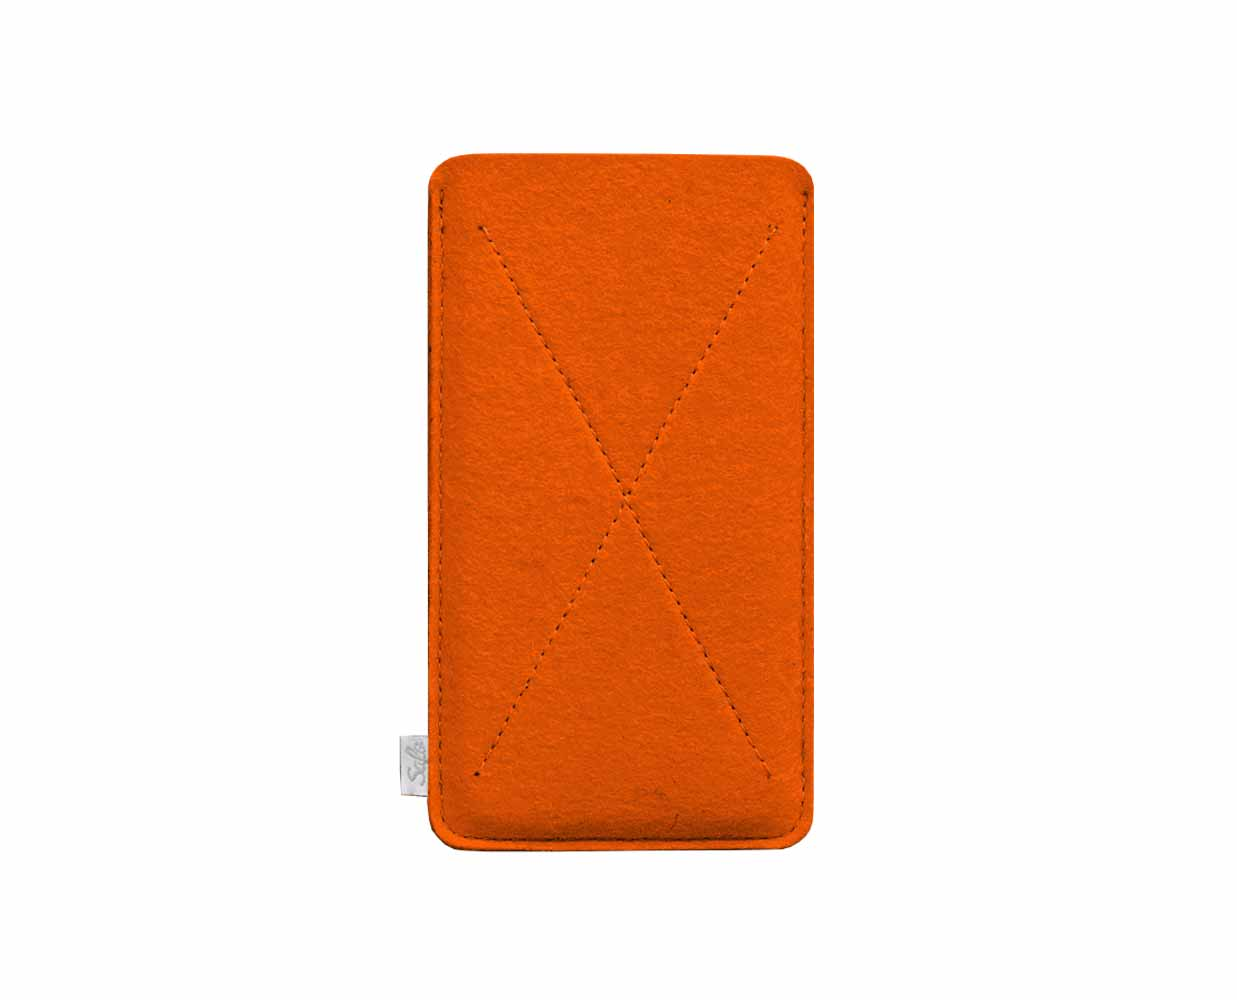 Чехлы: CROSS Orange iPhone 6, фотография №1